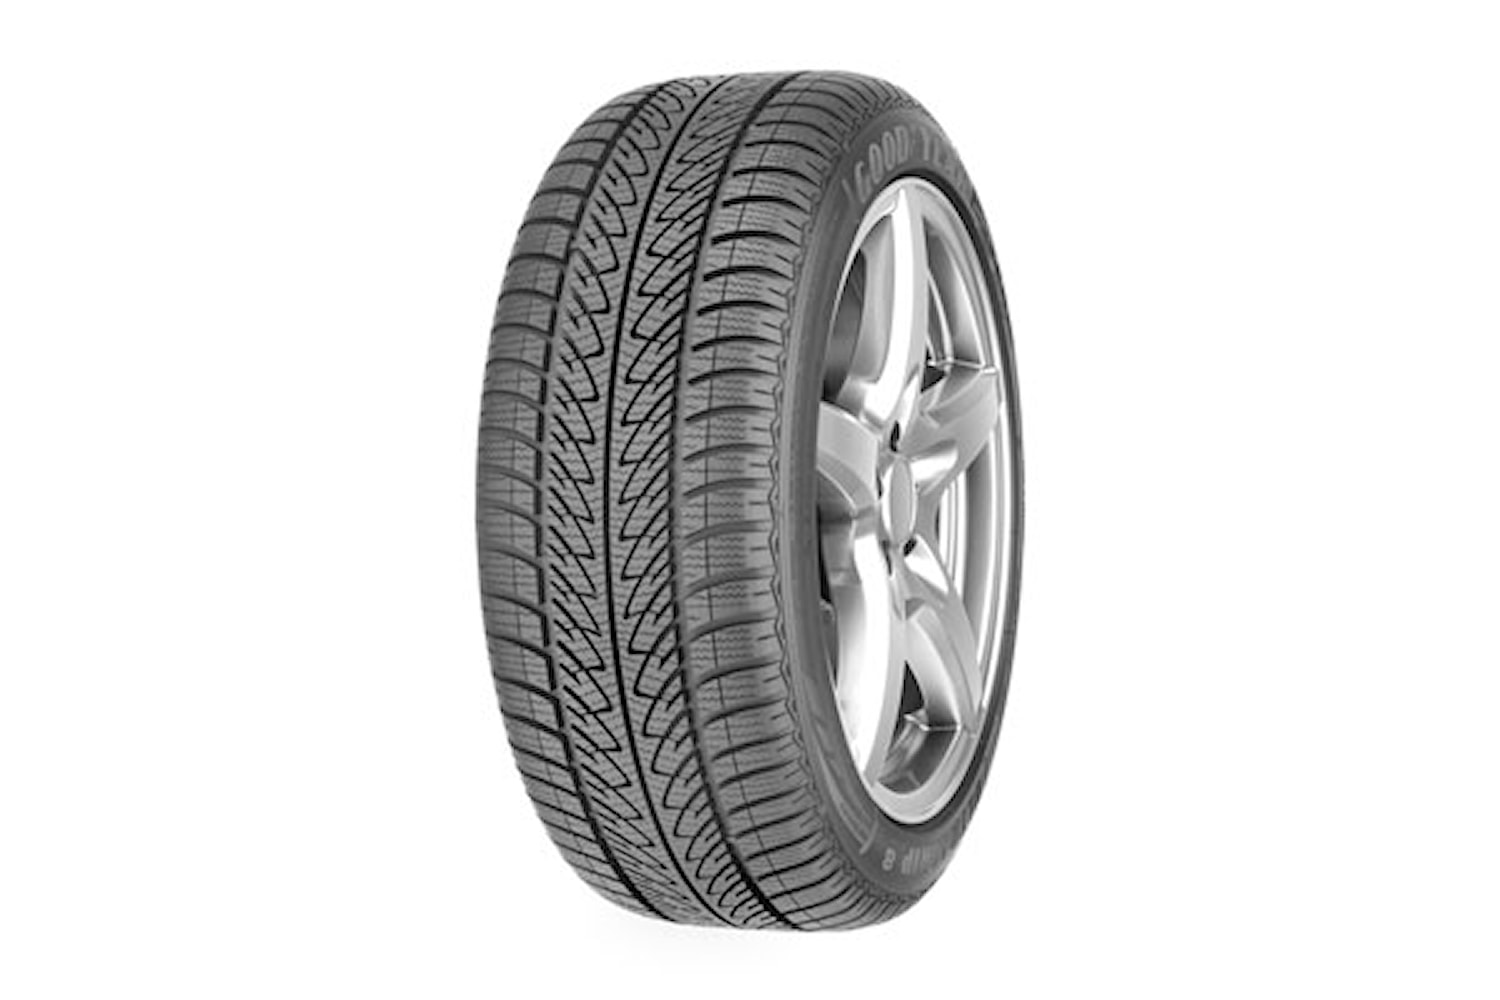 Goodyear UG 8 Perform. AO 108H